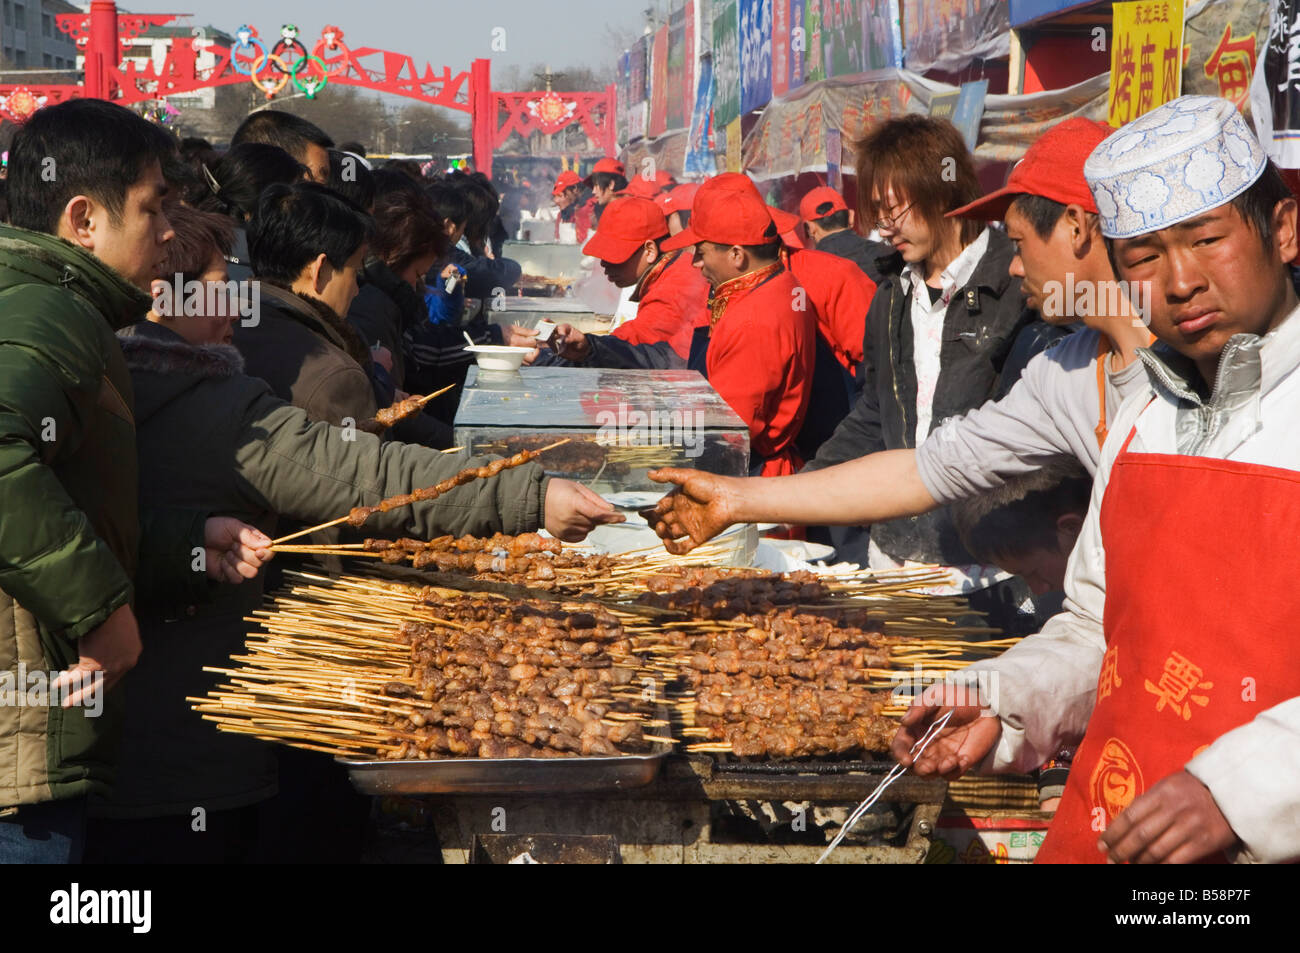 Food stalls selling meat sticks at Changdian Street Fair during Chinese New Year, Spring Festival, Beijing, China - Stock Image